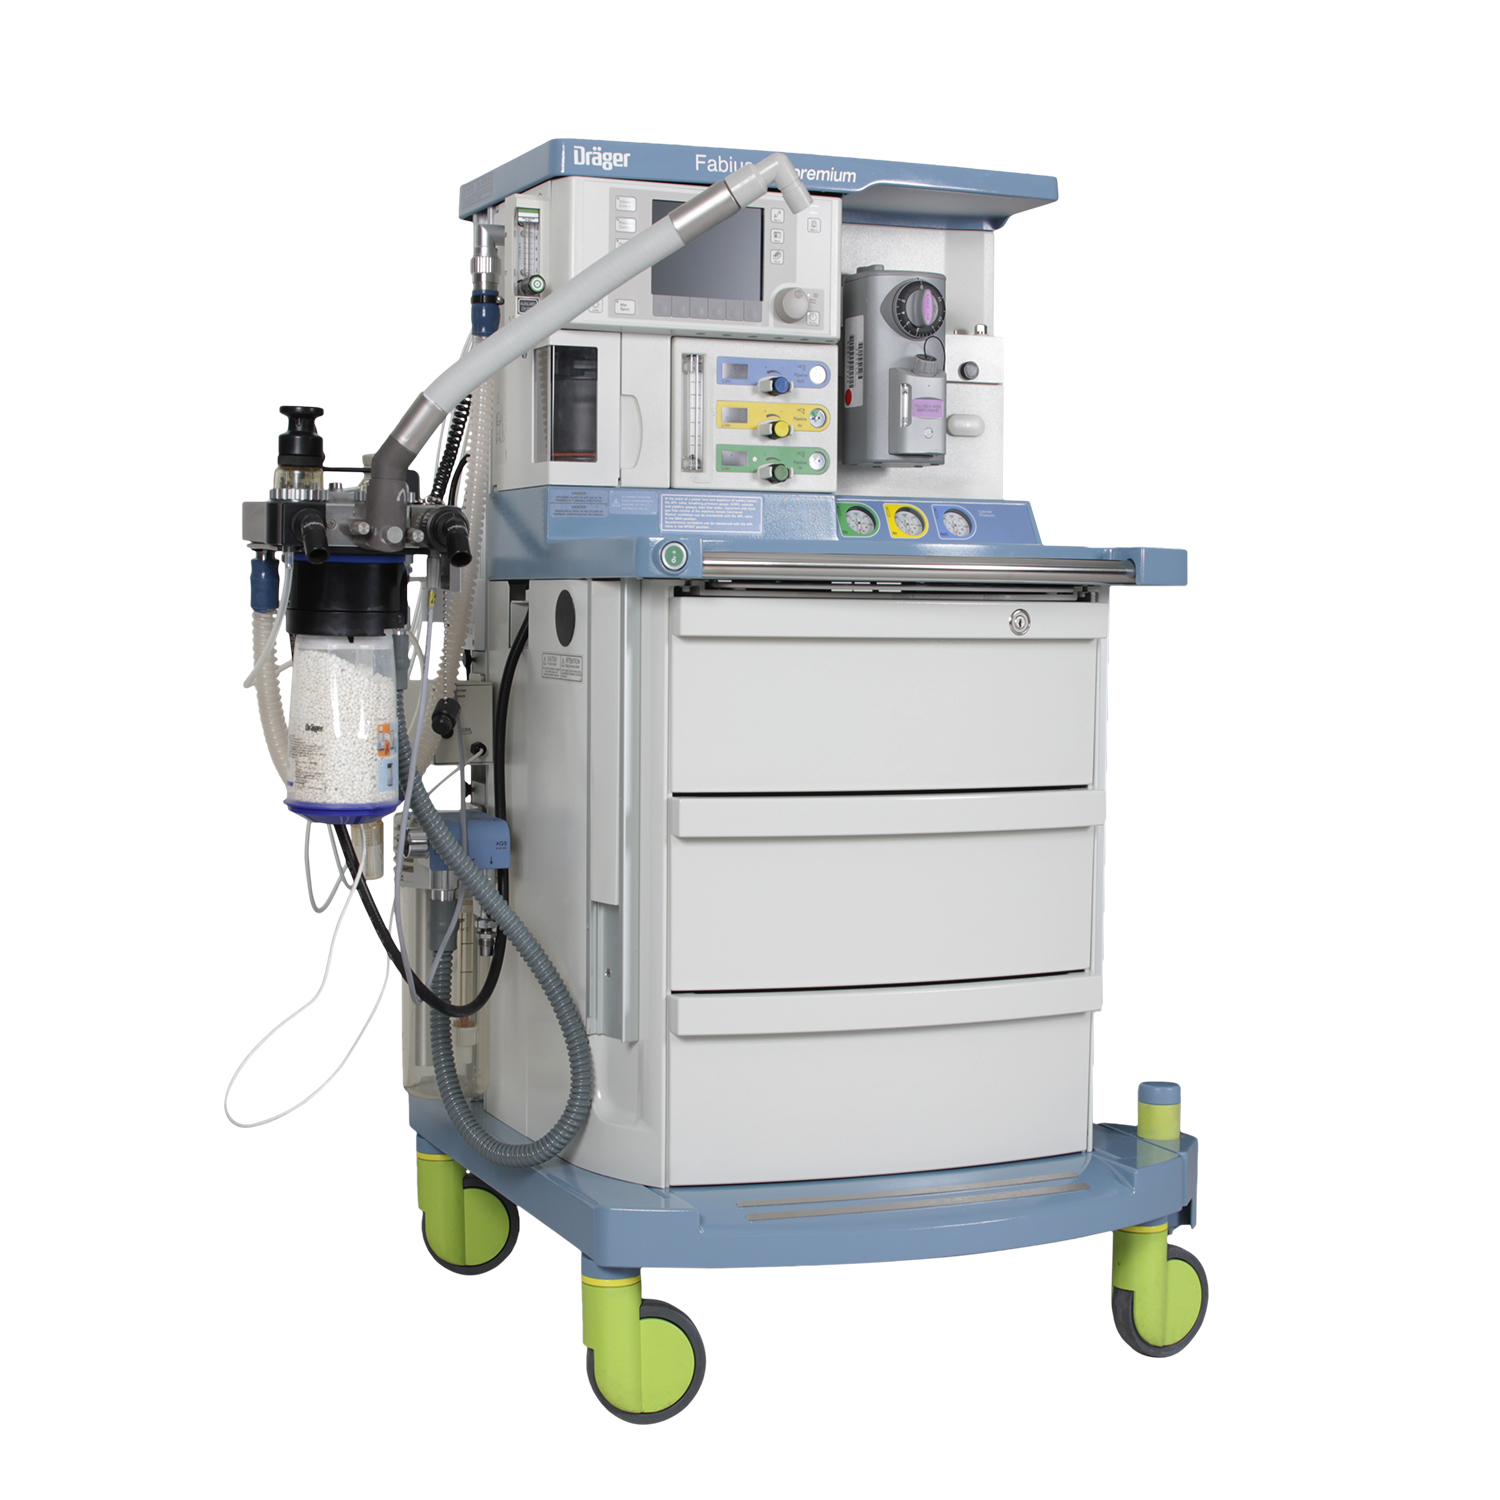 Drager Fabius GS Premium Anesthesia Machine